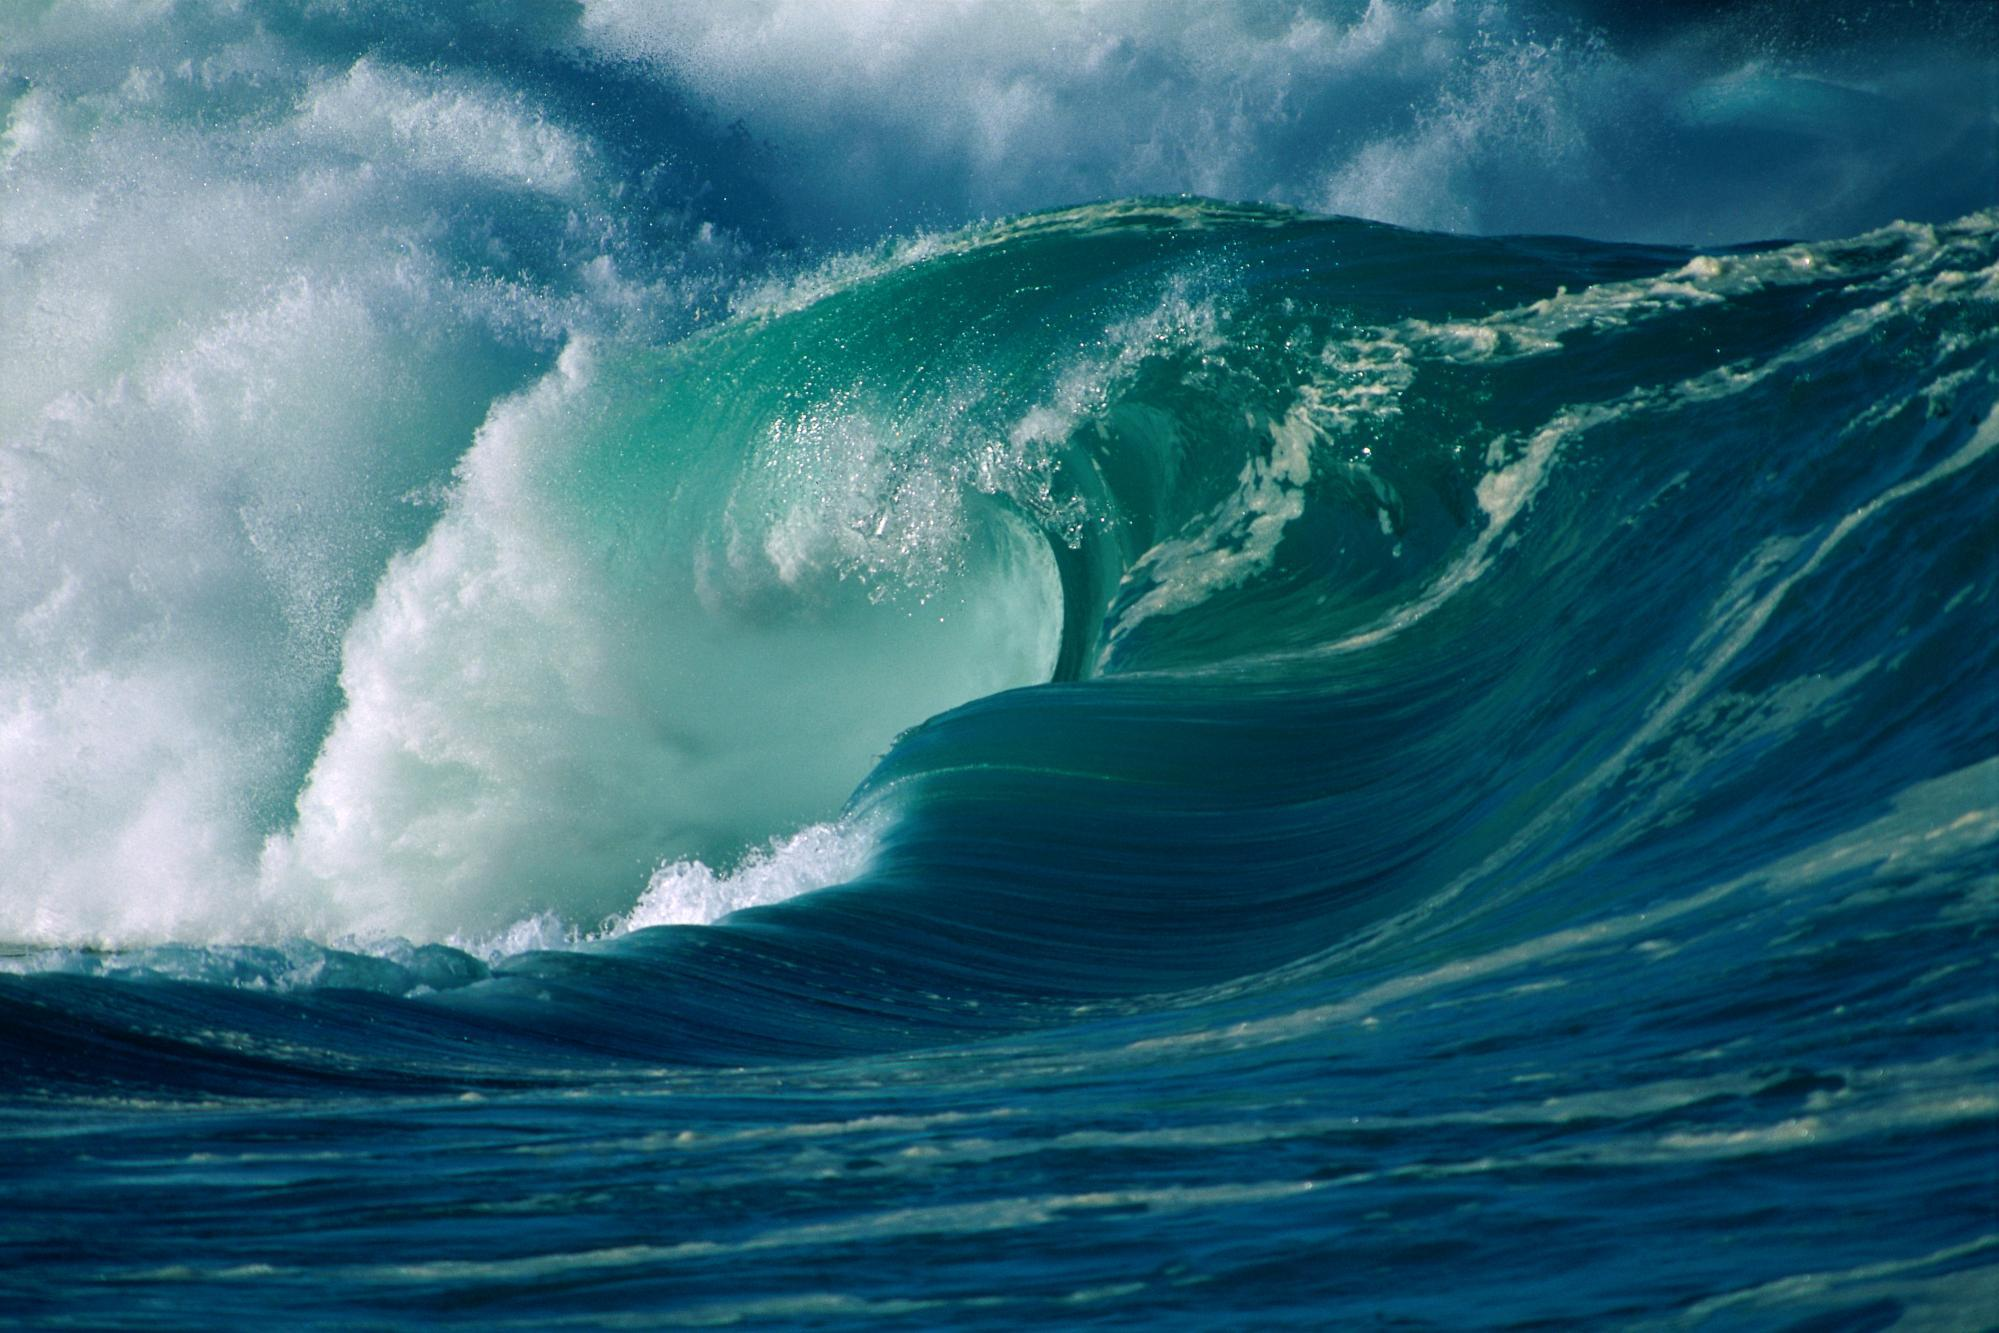 ocean waves wallpaper i14jpg   AdventureAmigosnet   AdventureAmigos 1999x1333